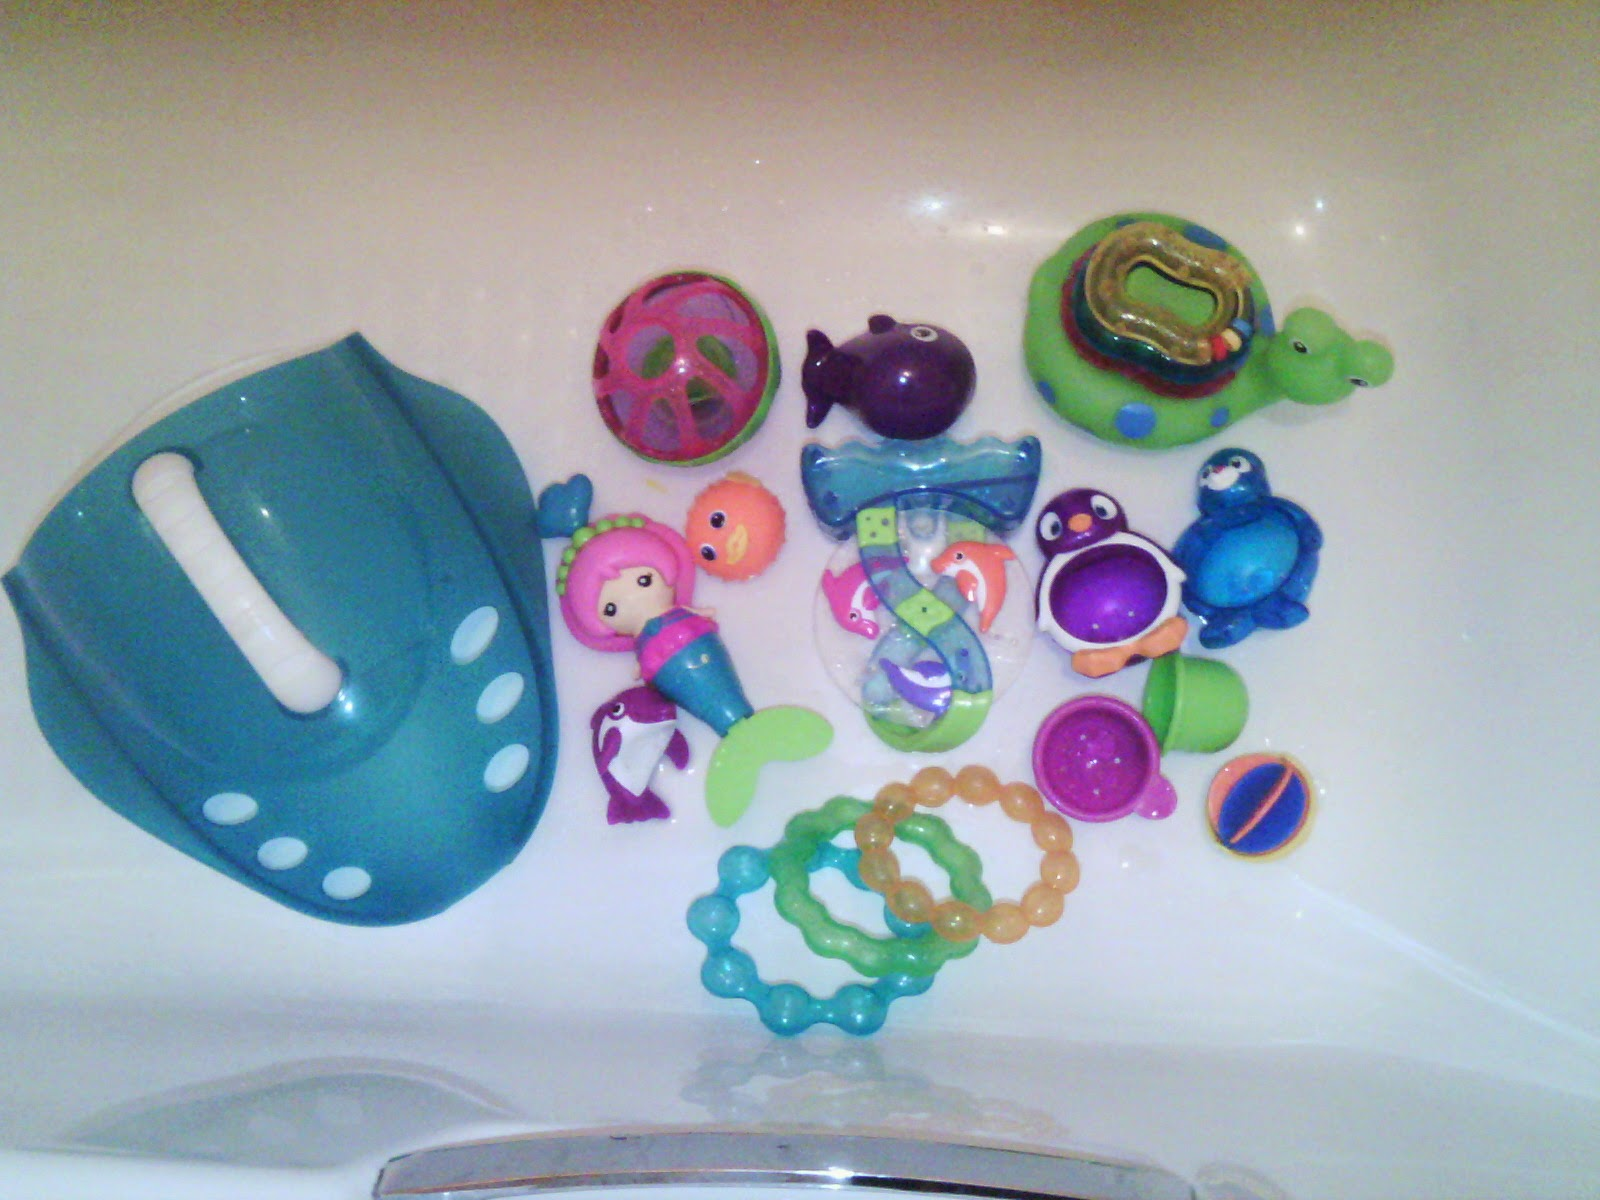 No More Cinderella : Munchkin bath toy review